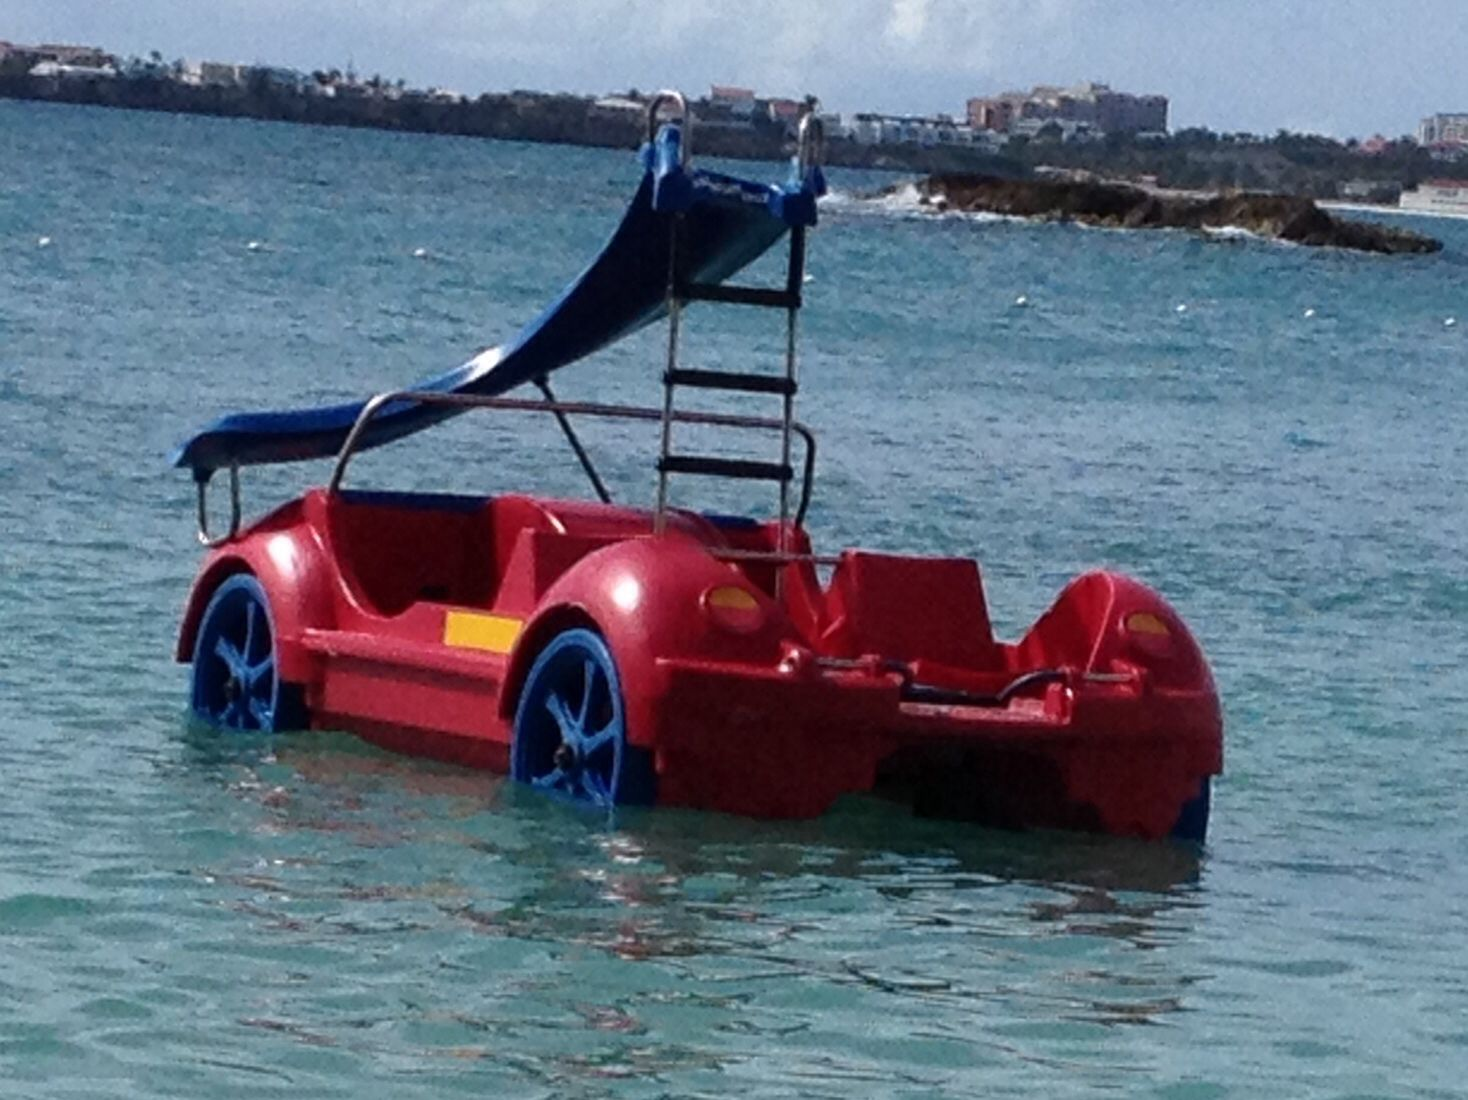 Car Boat to rent!